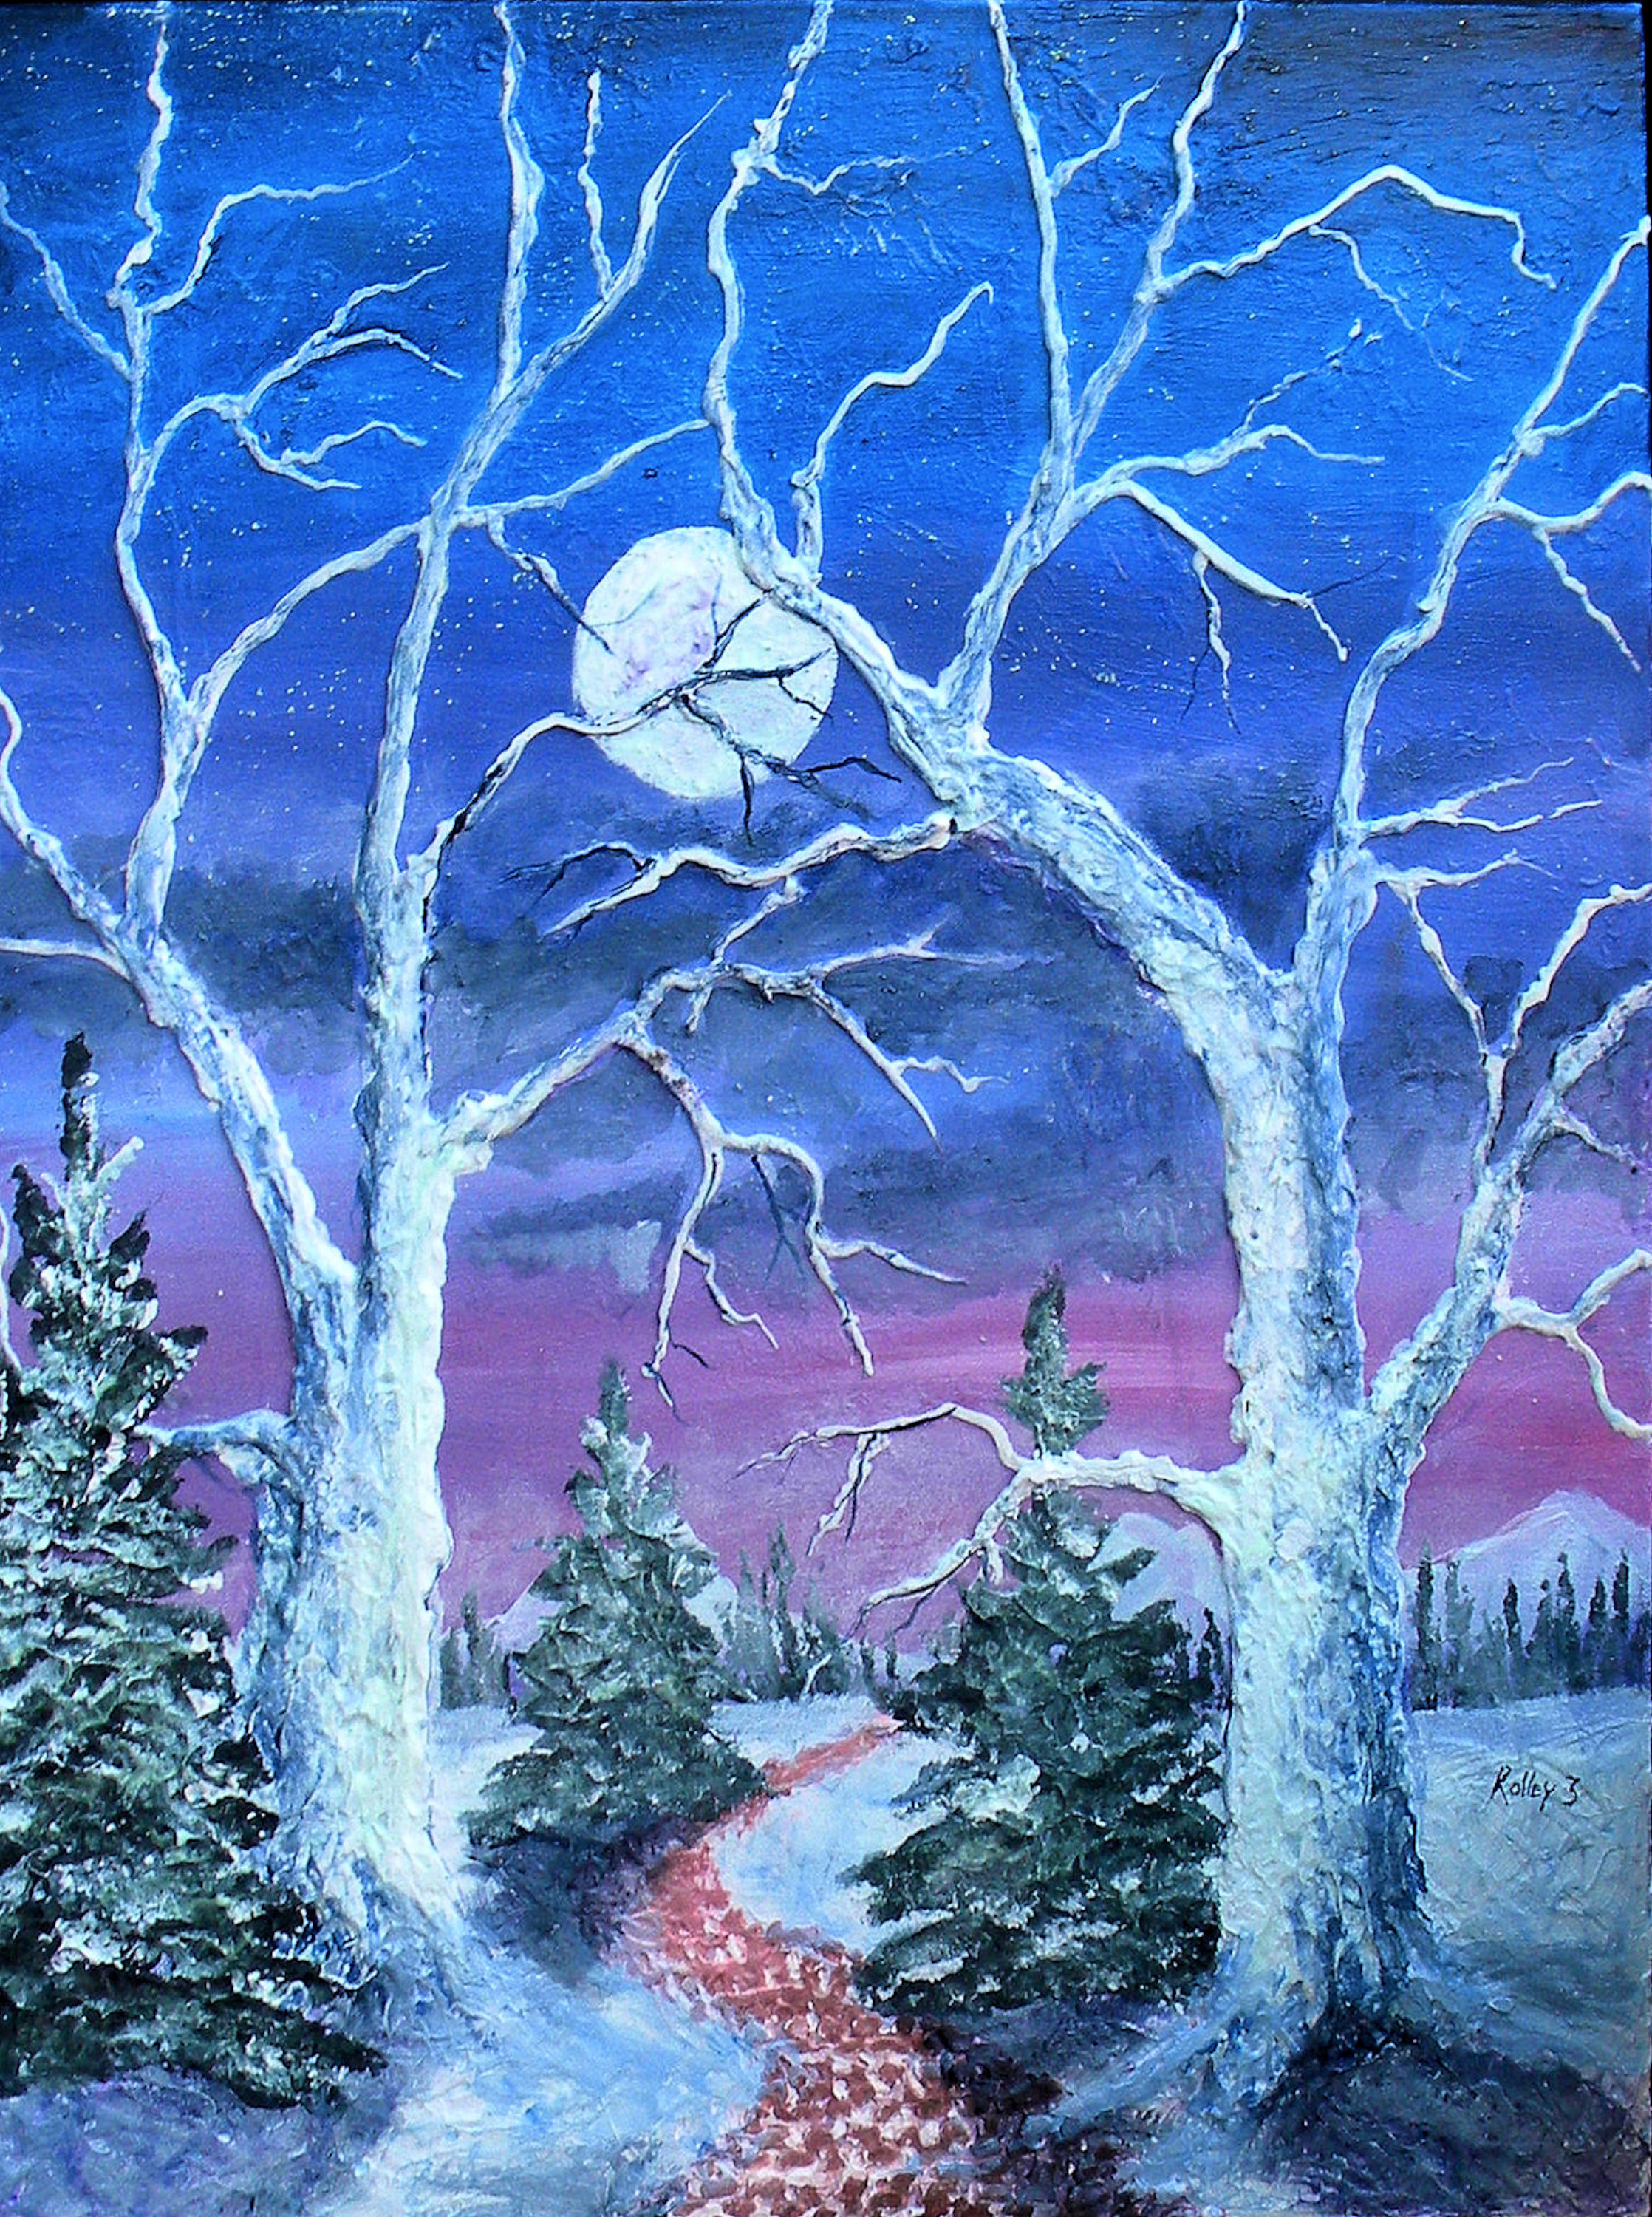 WALKING WARM          24x30   $450   HIGHLIGHTED WITH GLOW IN DARK LUMINESCENT PAINT